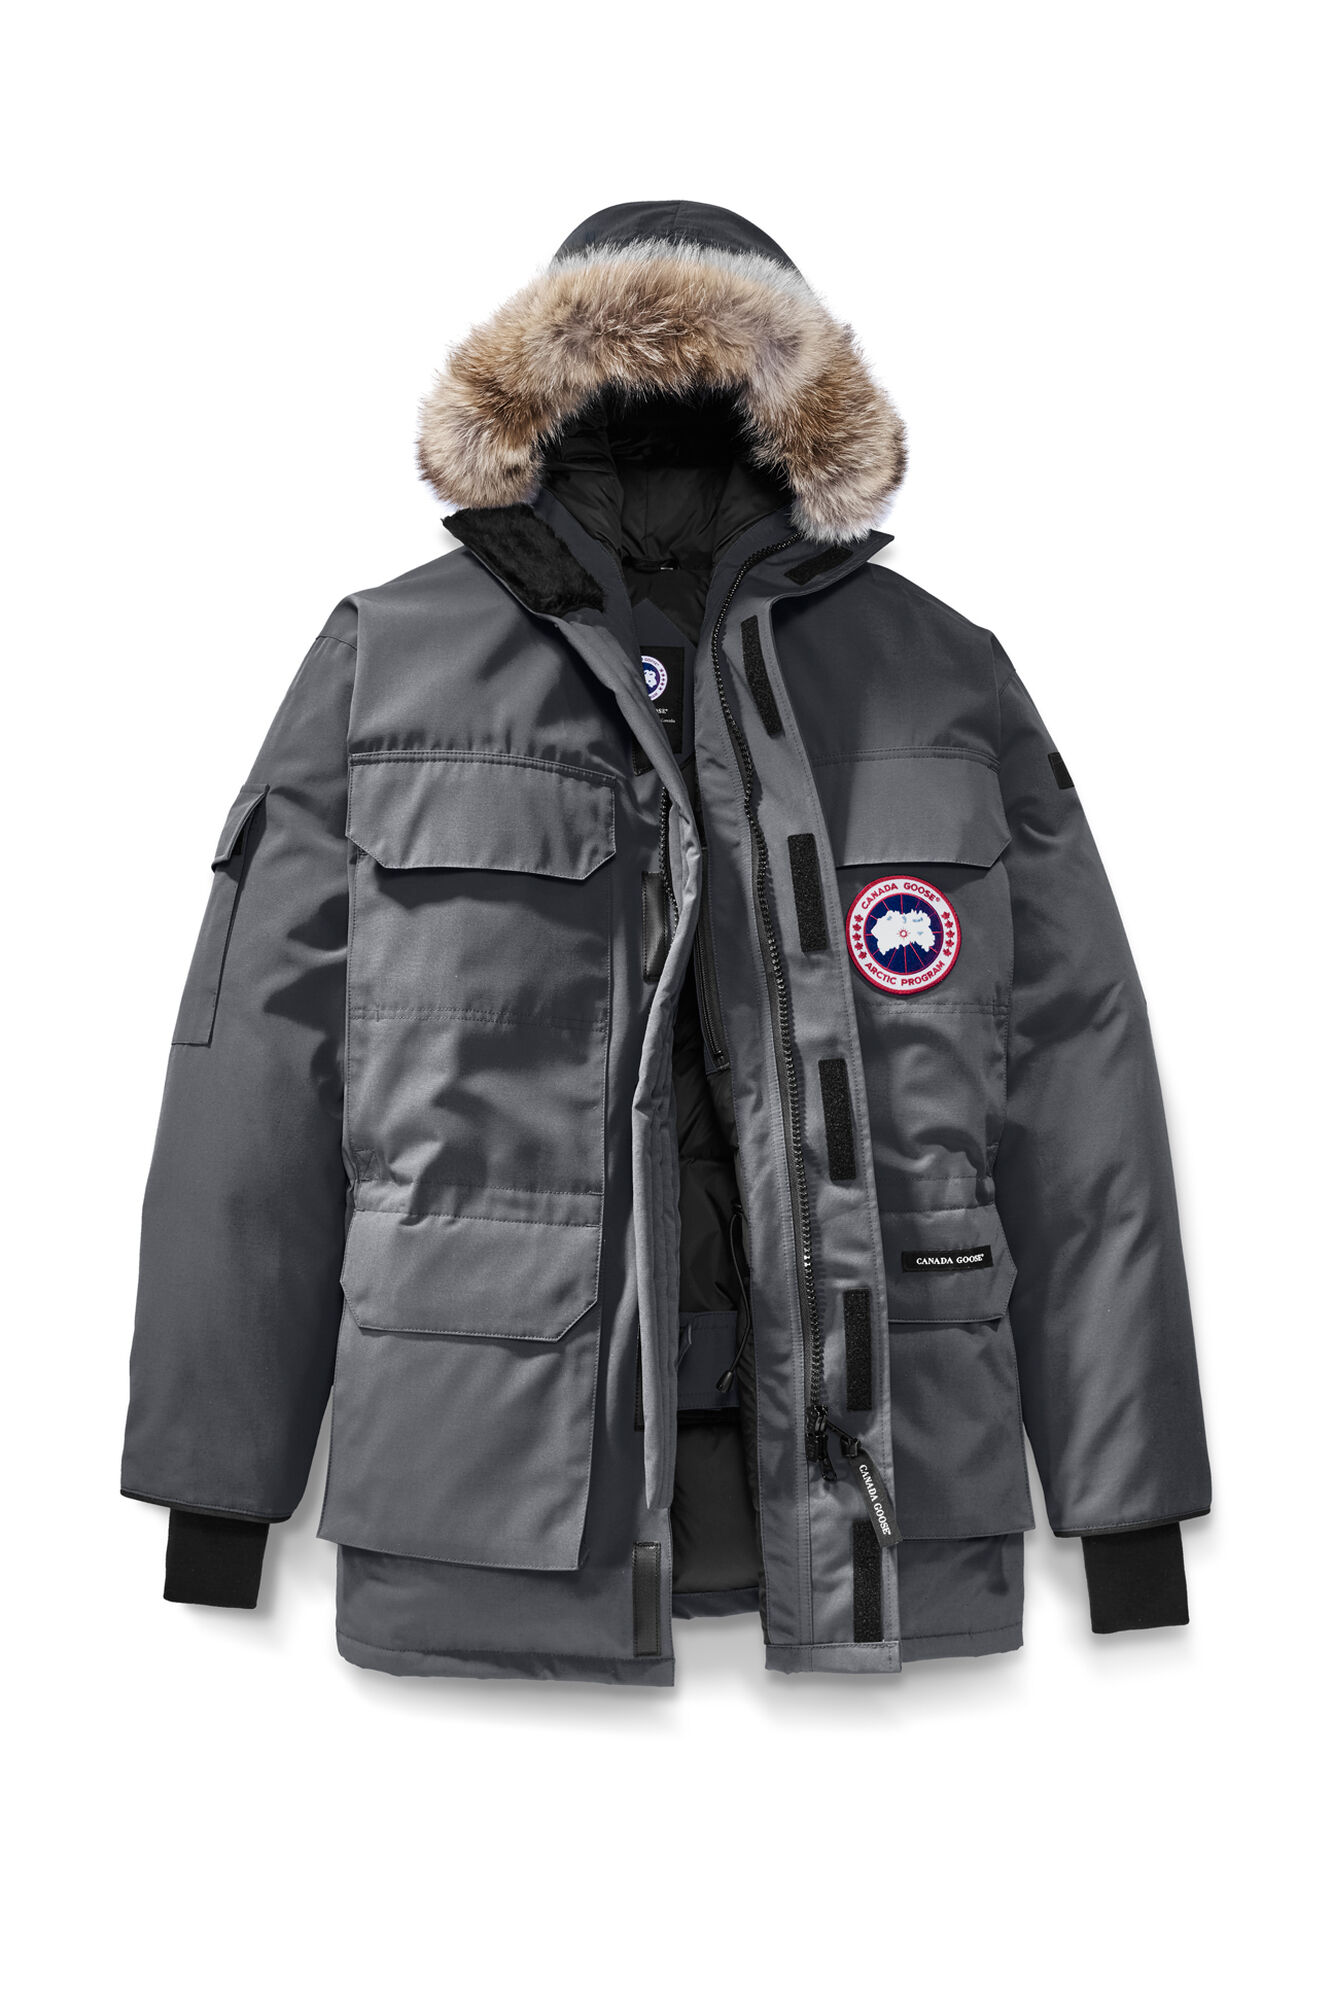 Men's Arctic Program Expedition Parka